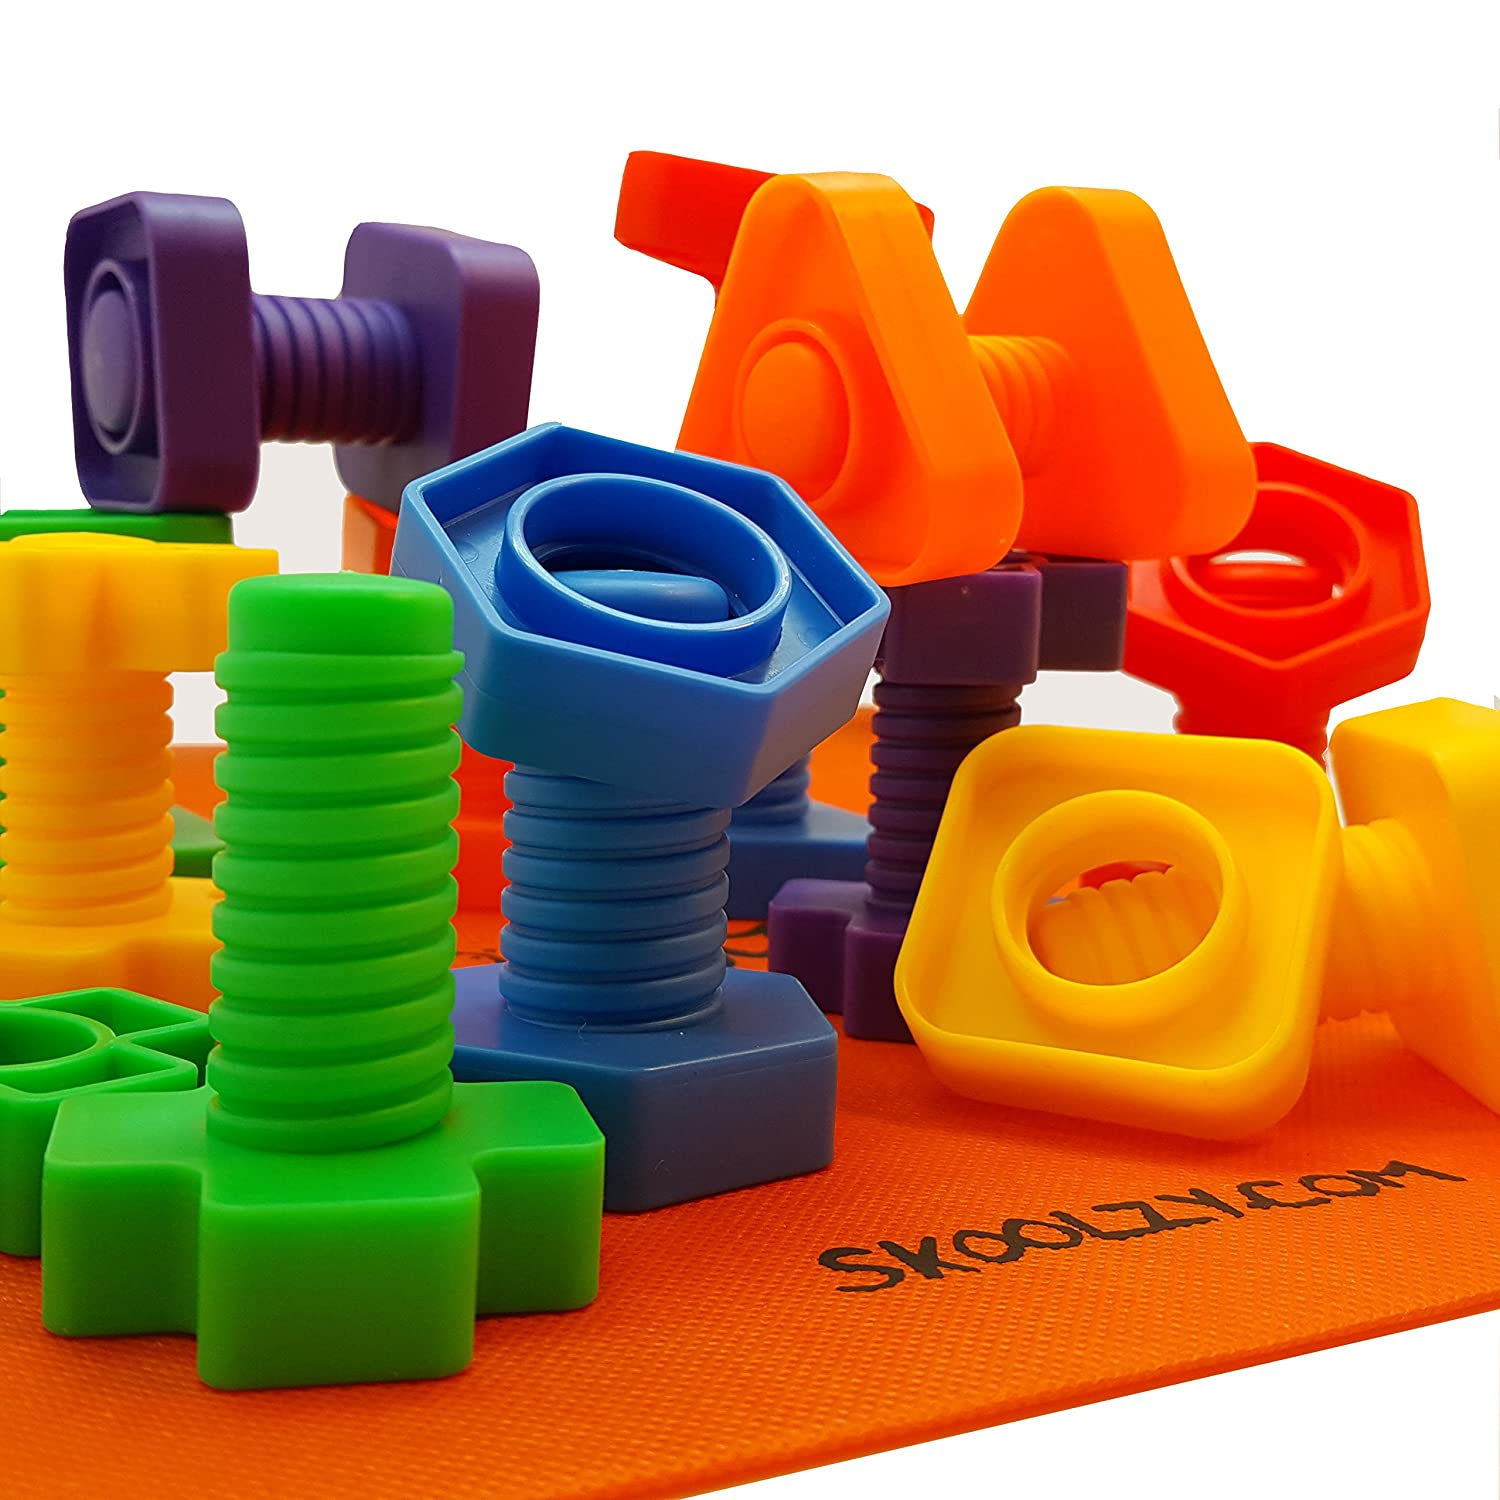 Skoolzy Nuts and Bolts Fine Motor Skills Occupational Therapy Toddler Toys Montessori Building Construction Kids Matching Game for Preschoolers Jumbo 24 pc Set with Backpack Activity Download